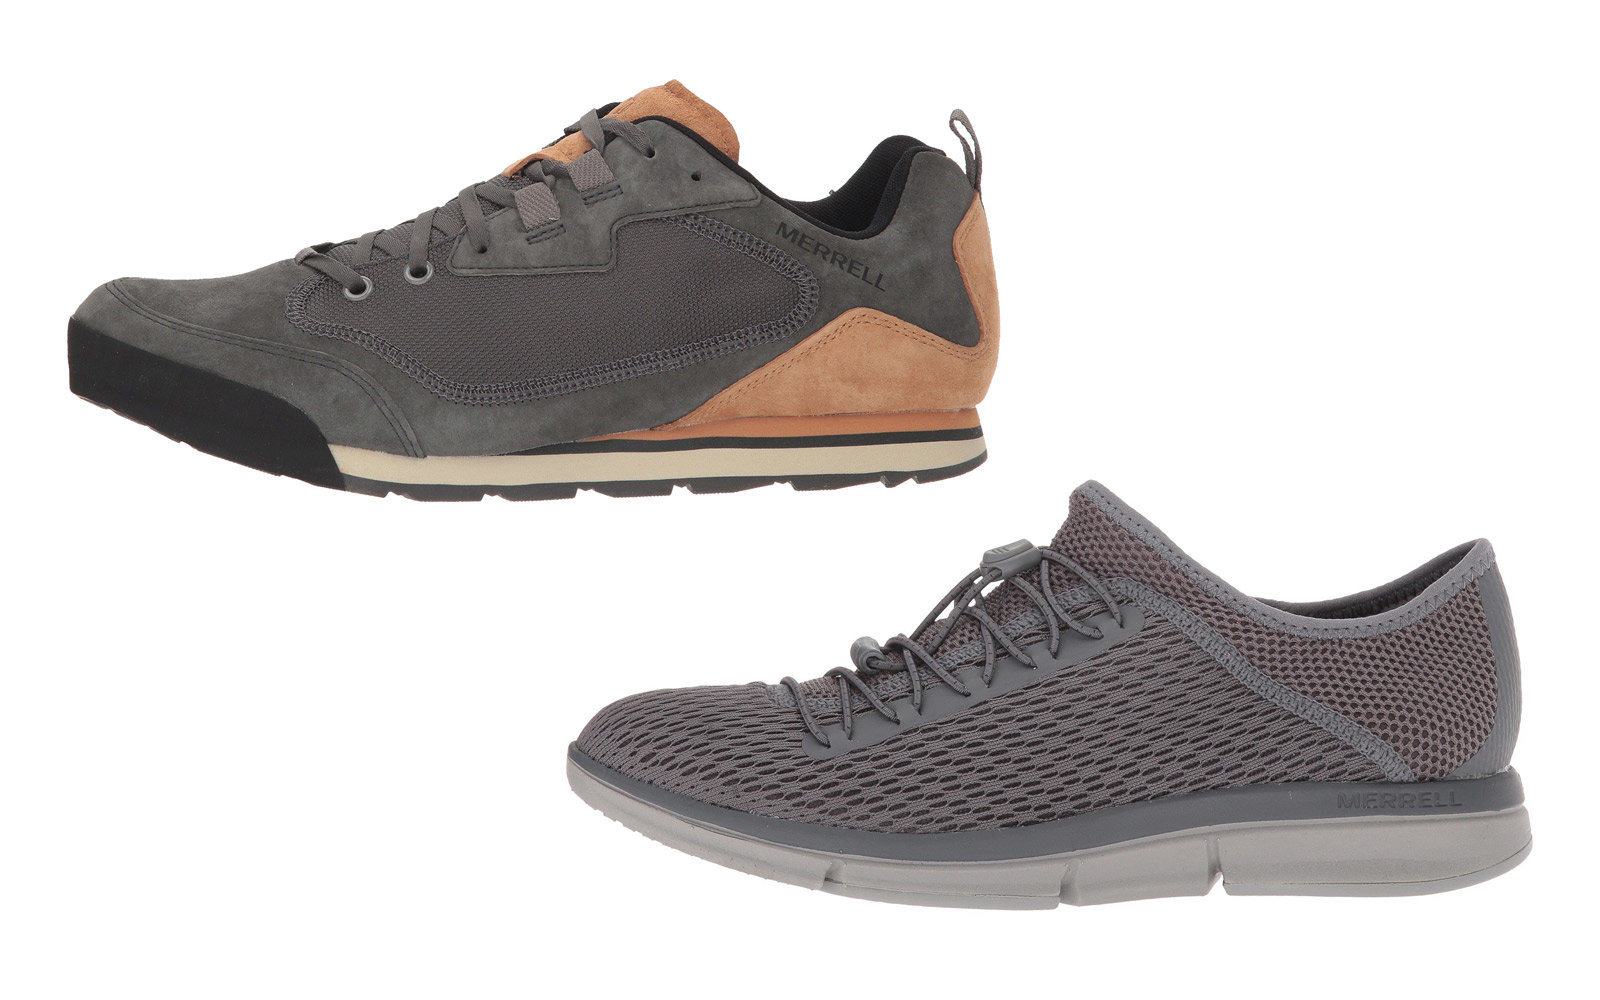 f1032ebaf95 Merrell. best comfort shoes brands merrell